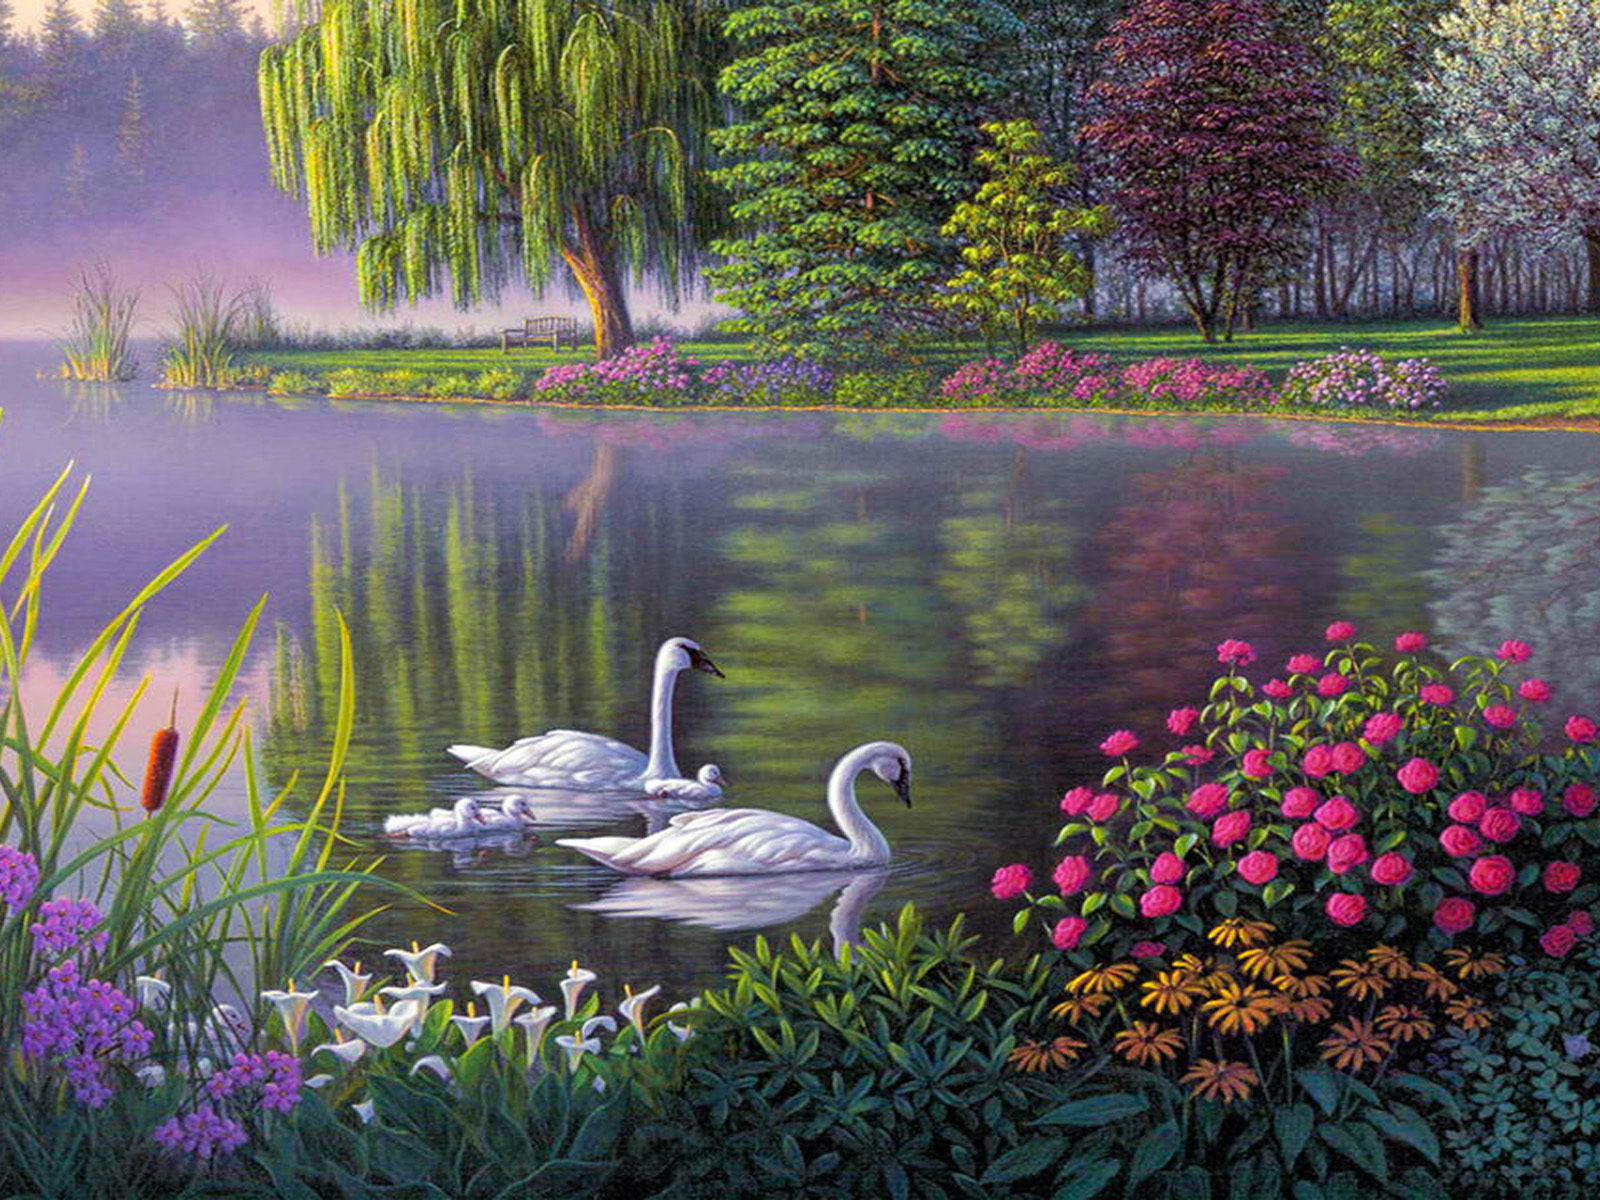 Landscape Swan Lake Trees Flowers Art Wallpaper HD